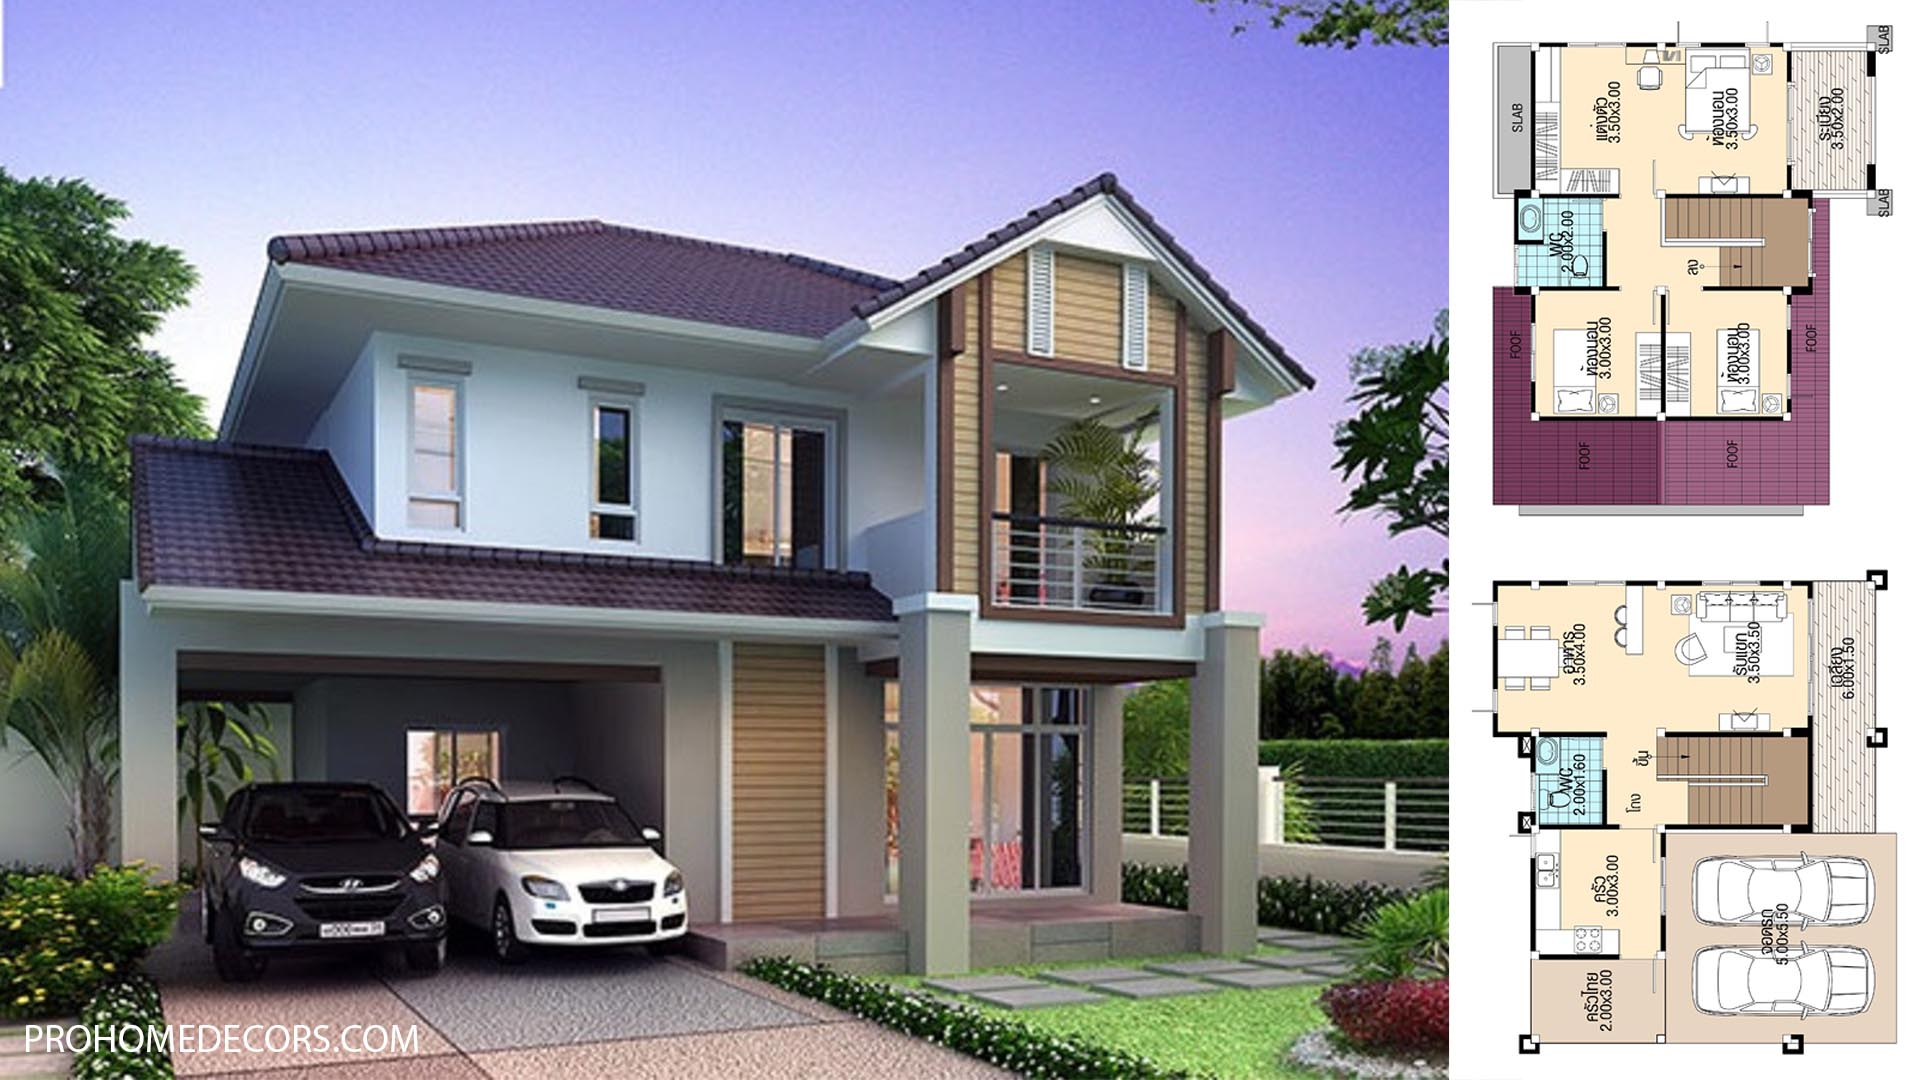 House Plans 11×9 with 3 bedrooms